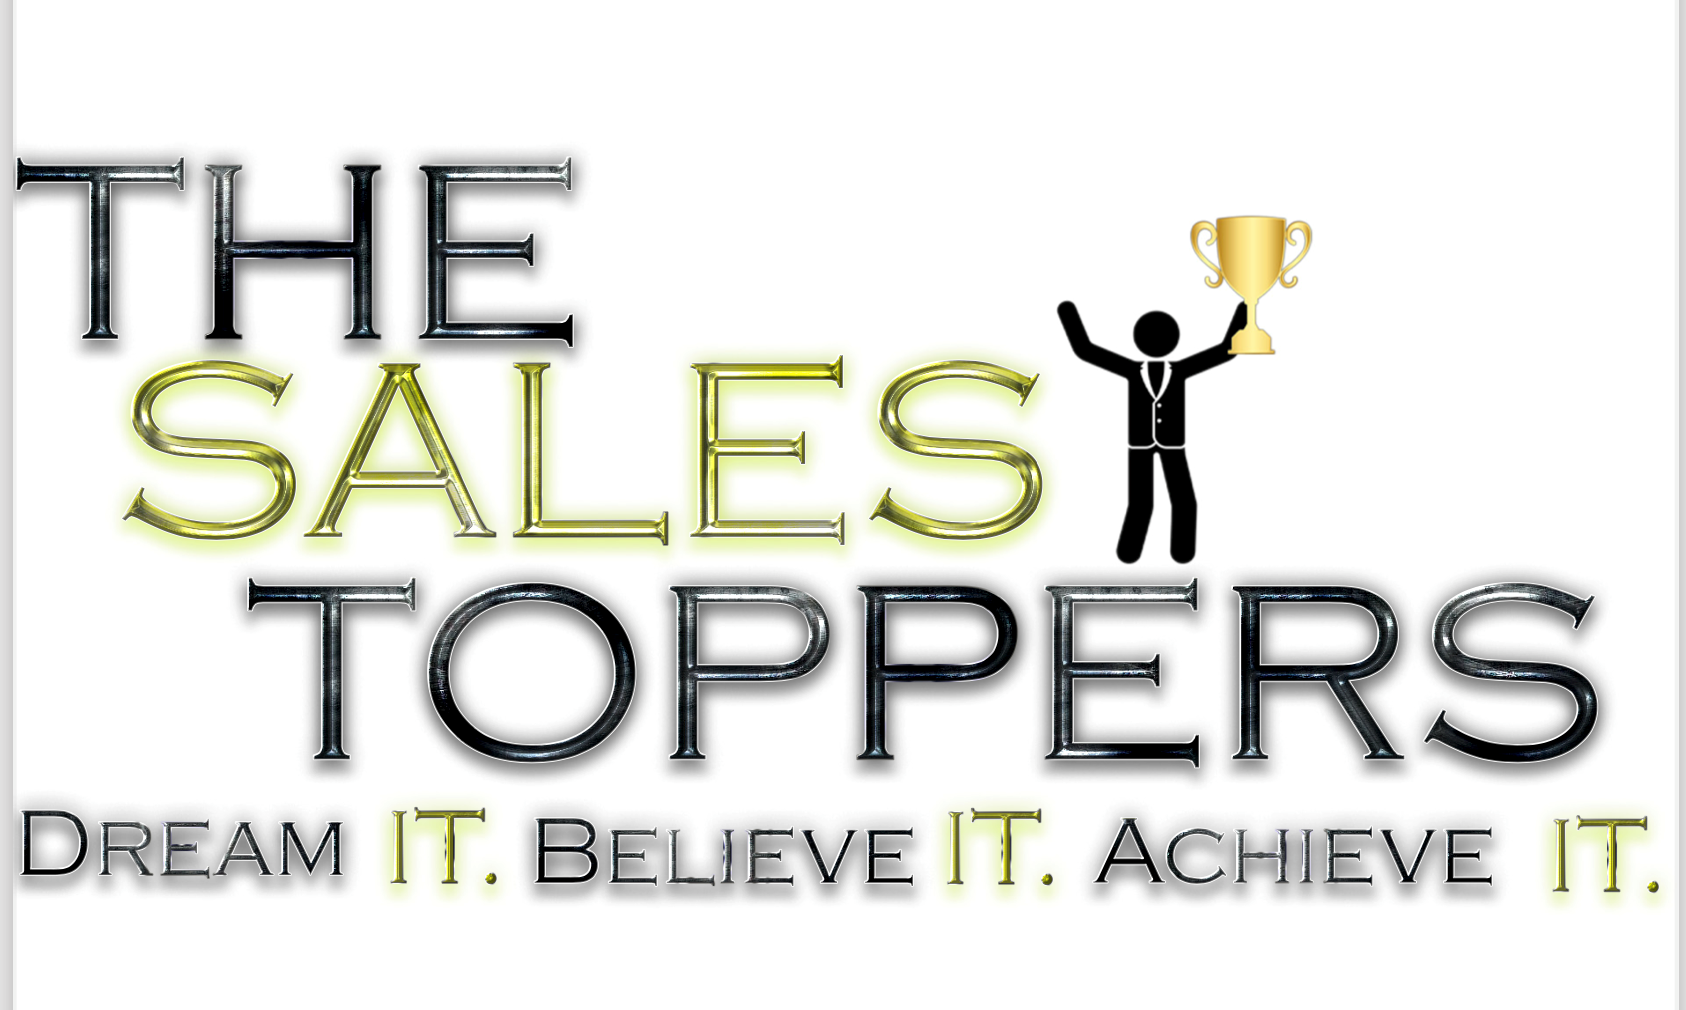 The sales toppers logo